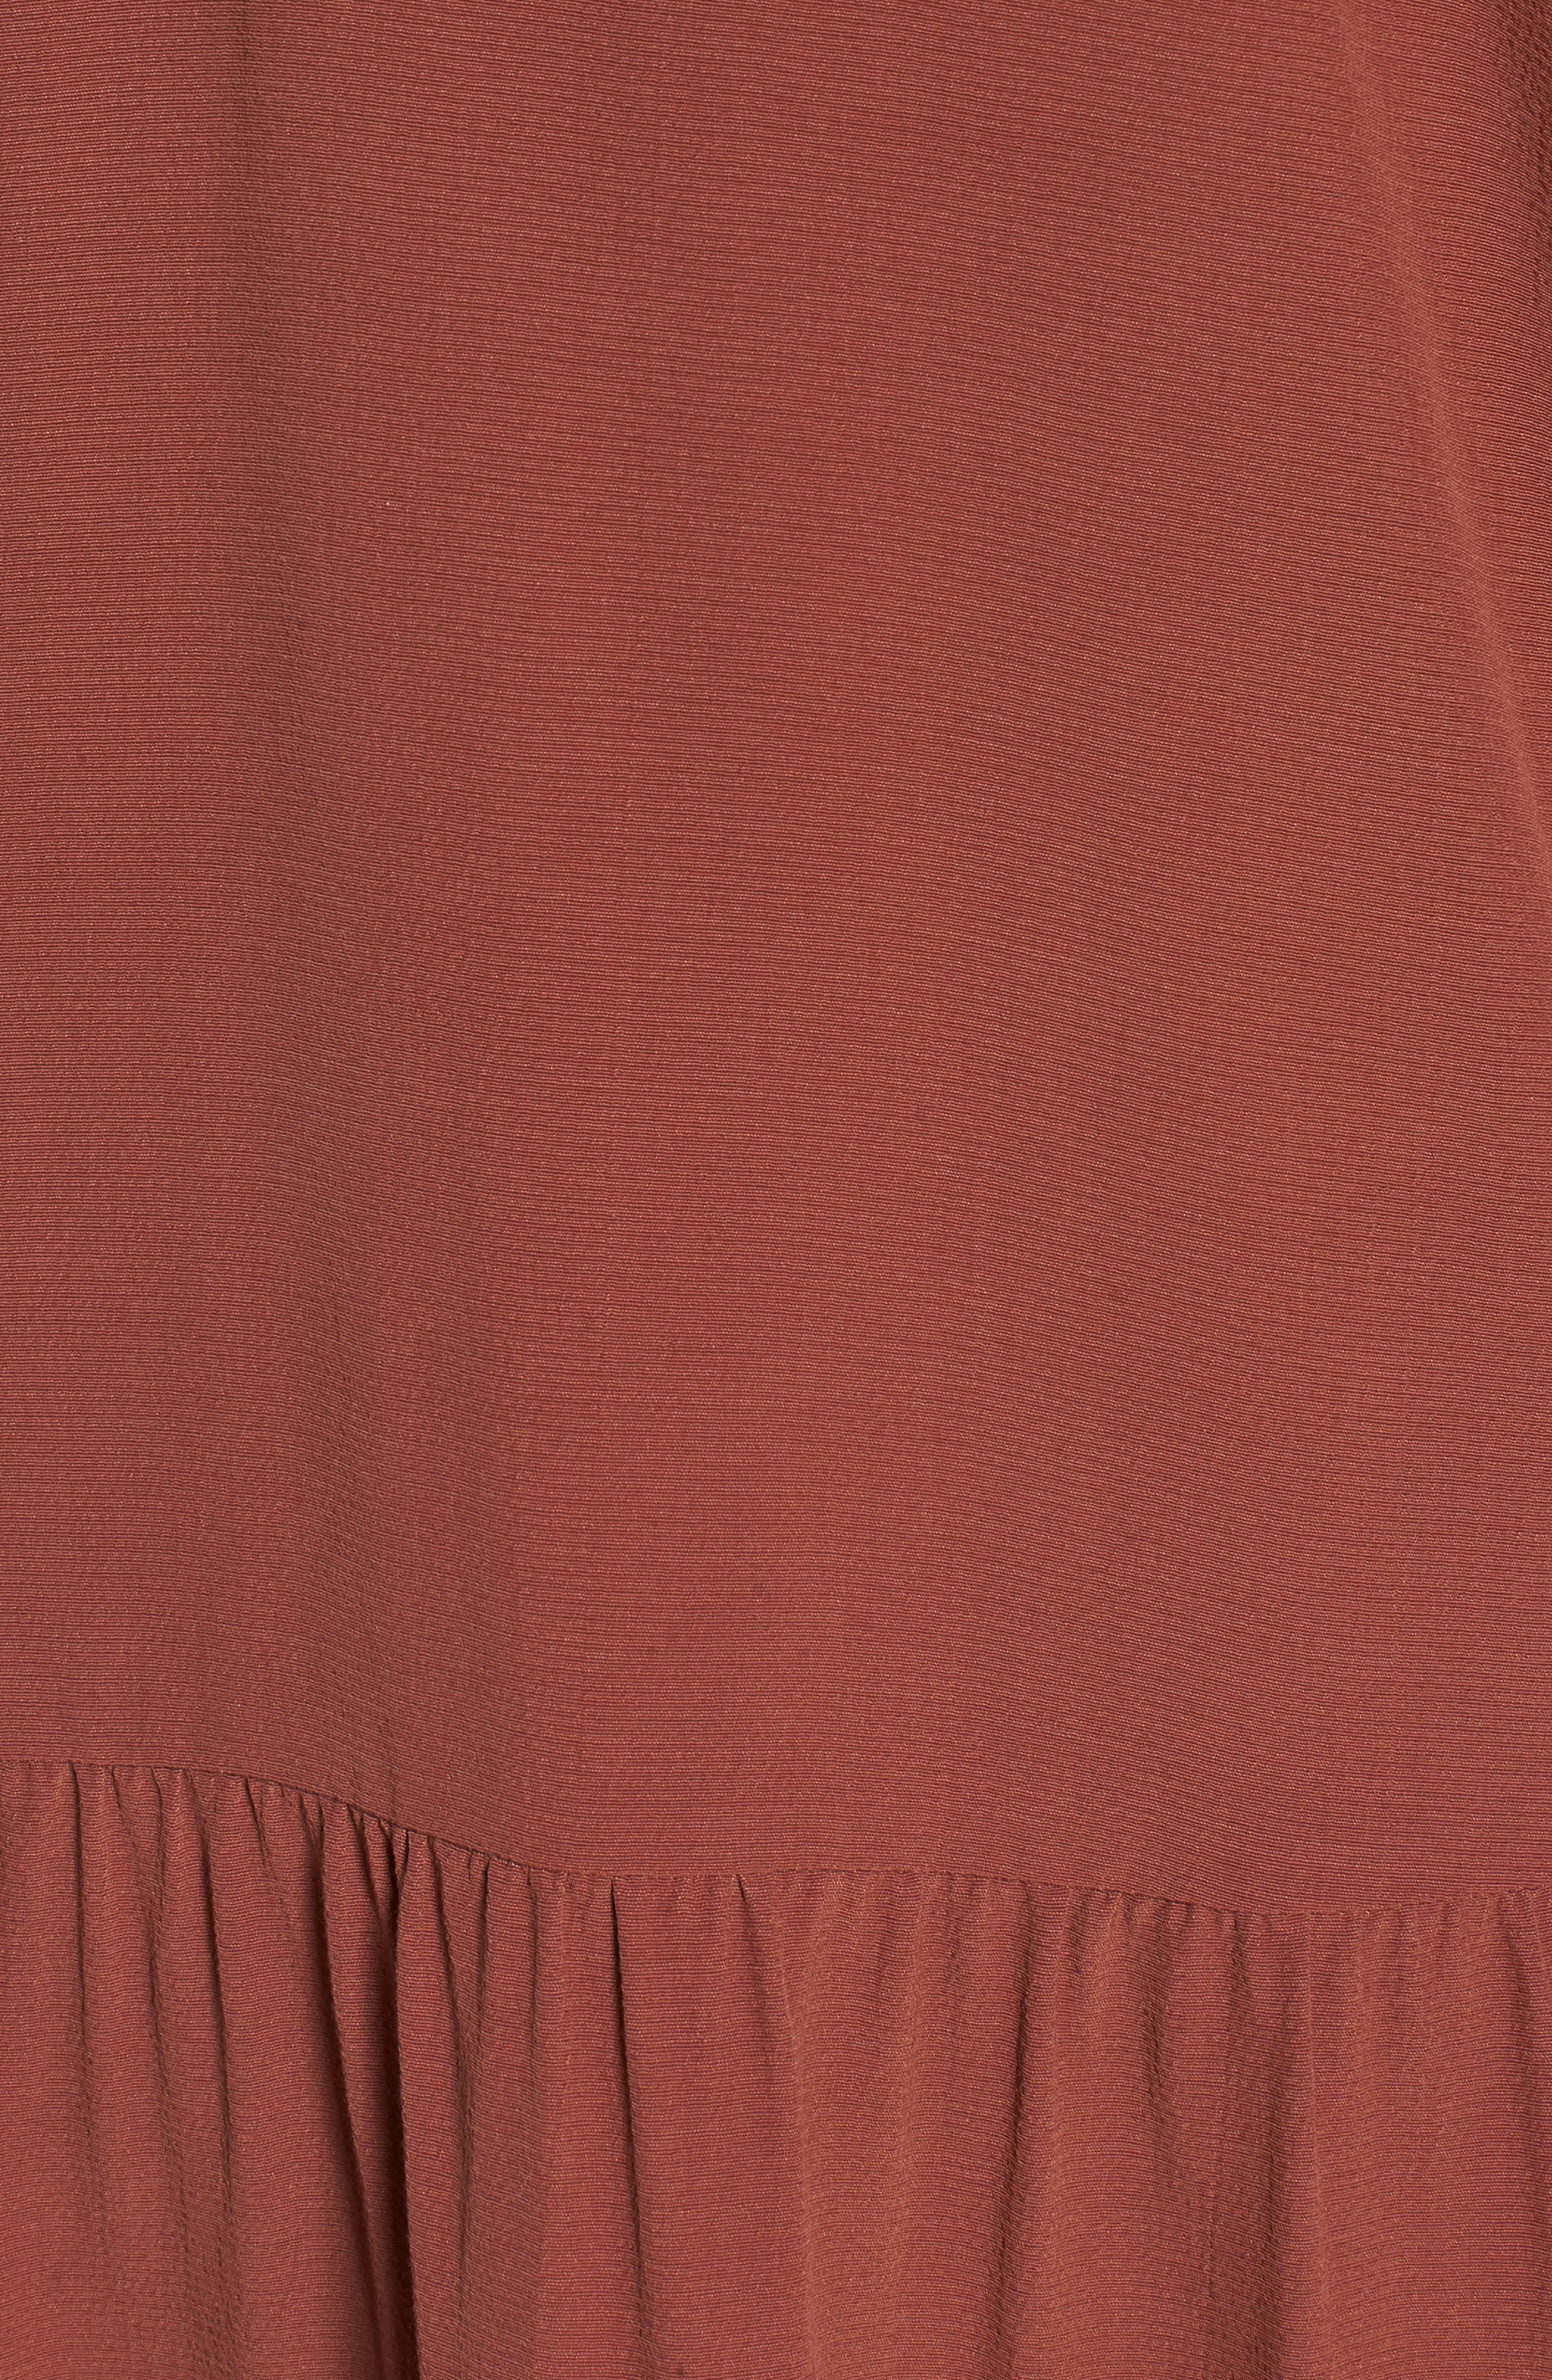 Drop Waist Tencel<sup>®</sup> Lyocell Blend Dress,                             Alternate thumbnail 6, color,                             Russet